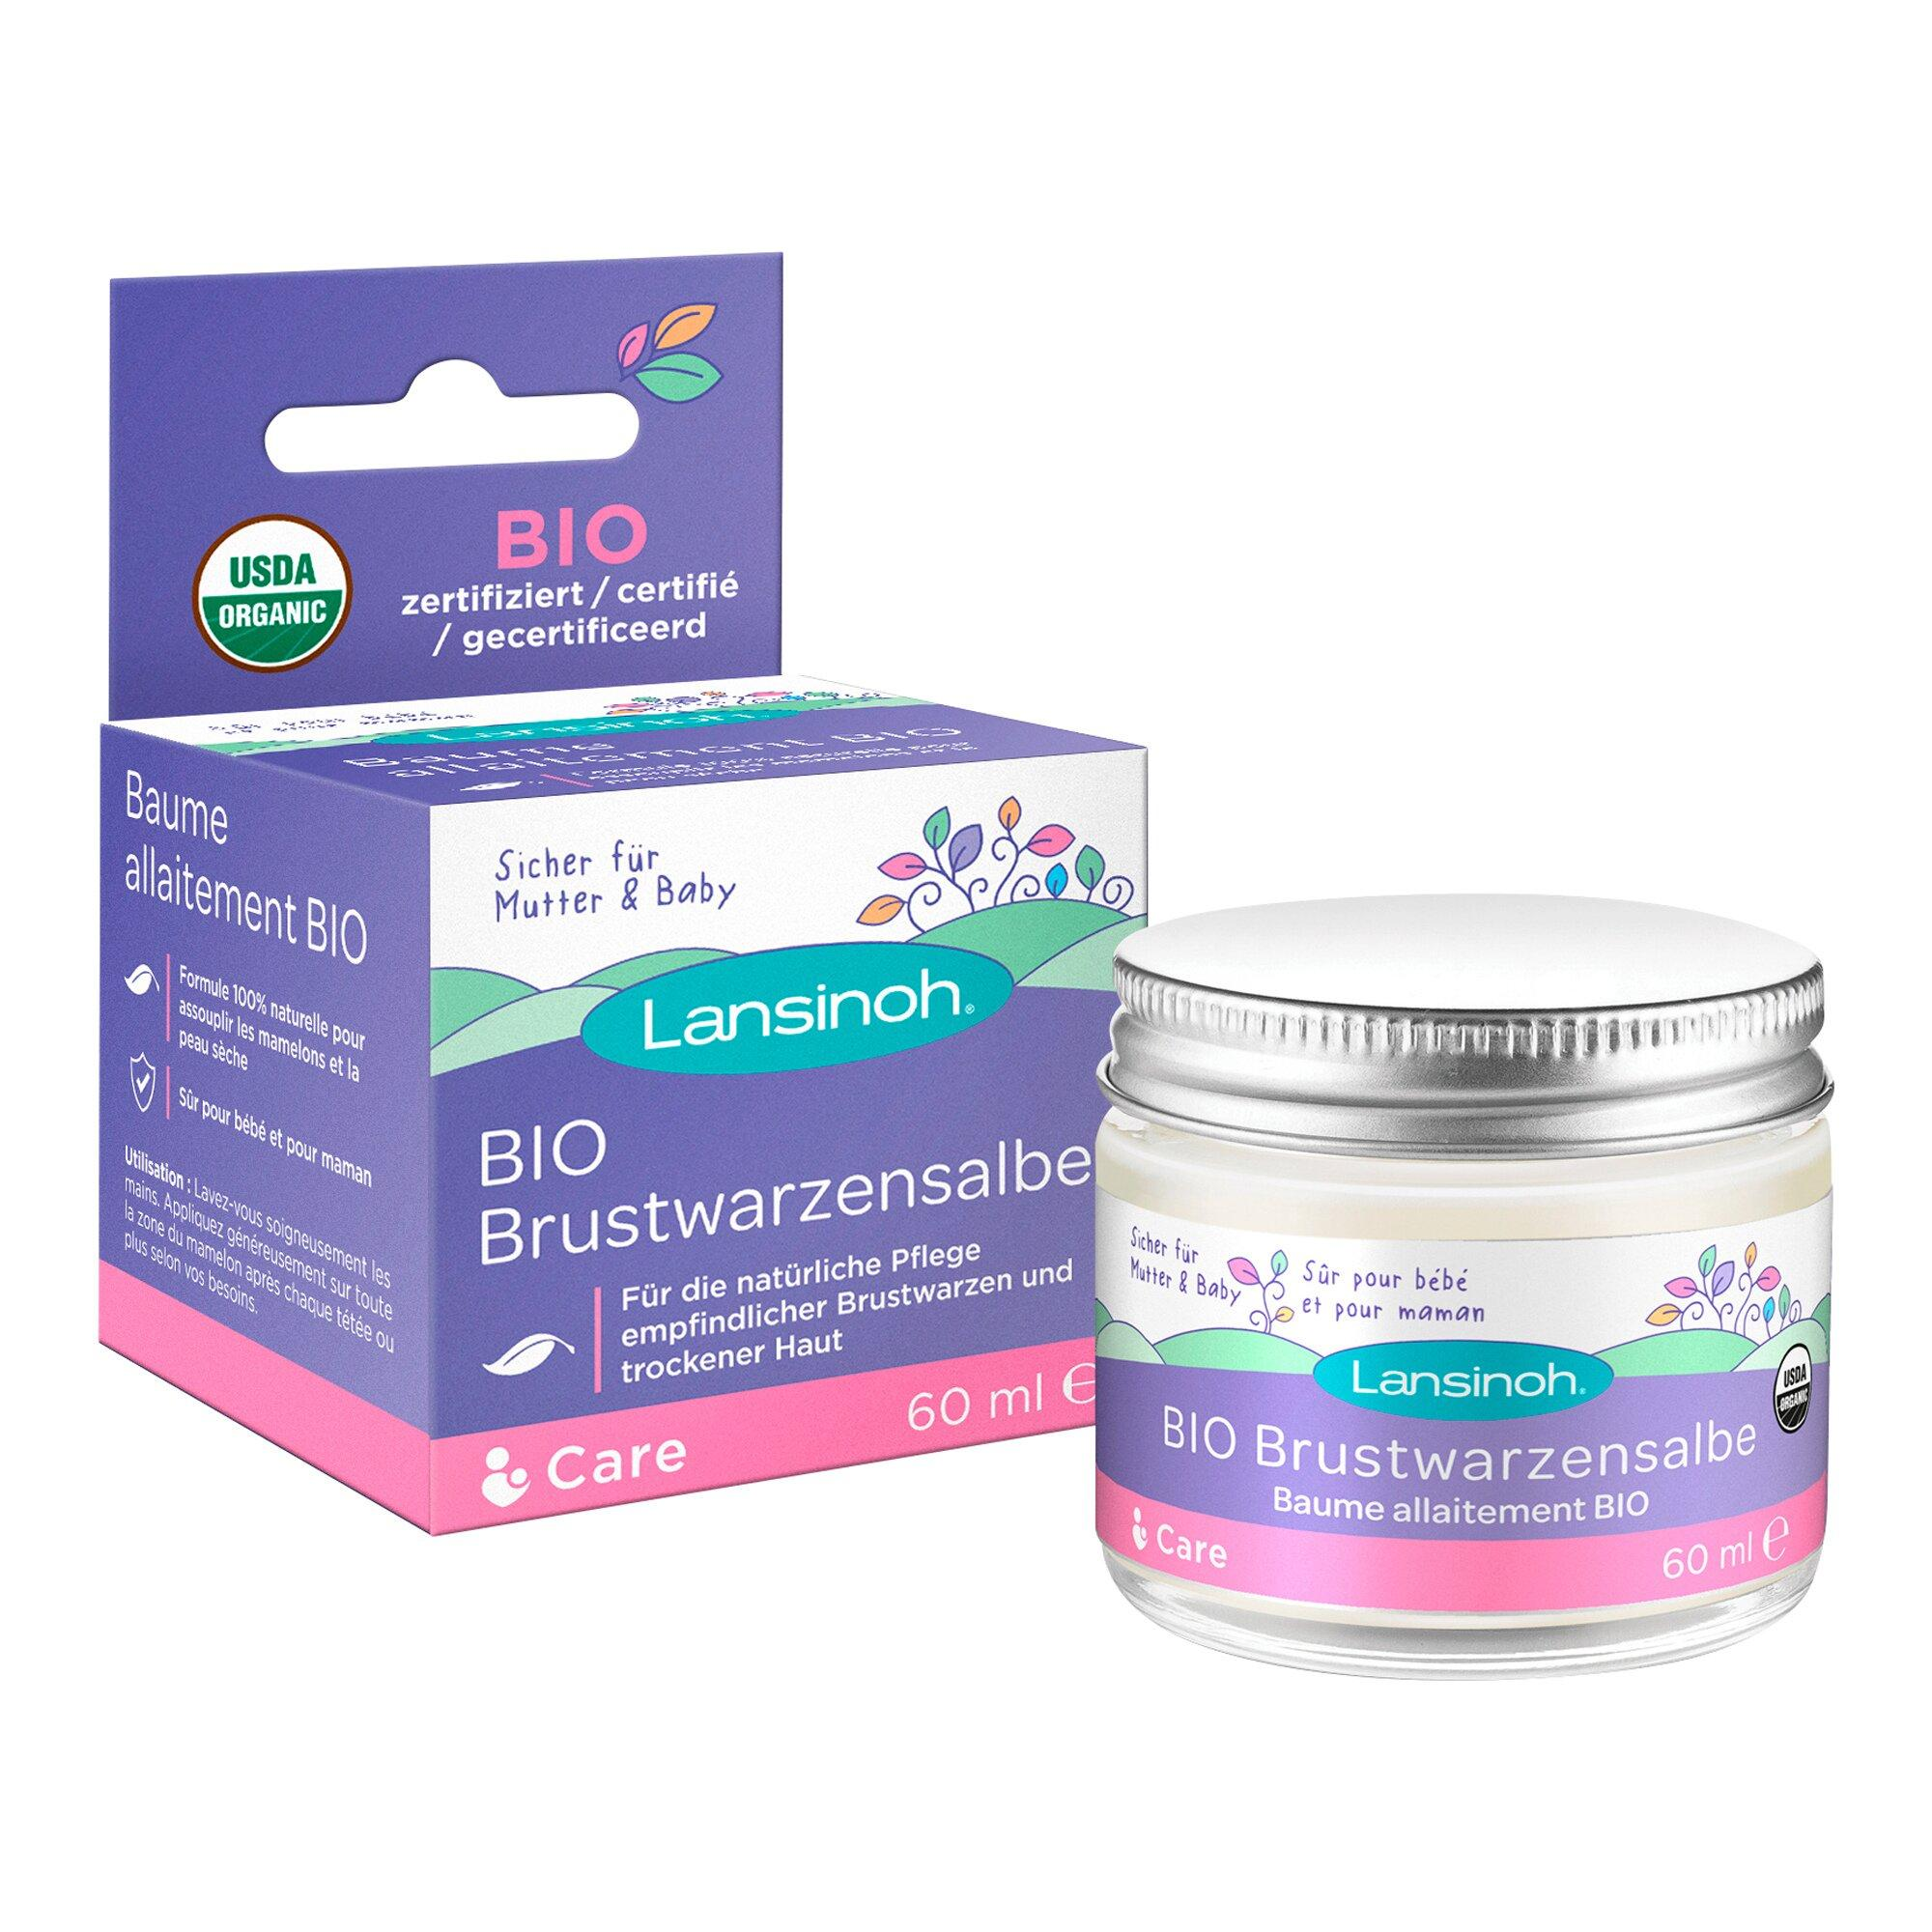 BIO Brustwarzensalbe 60 ml